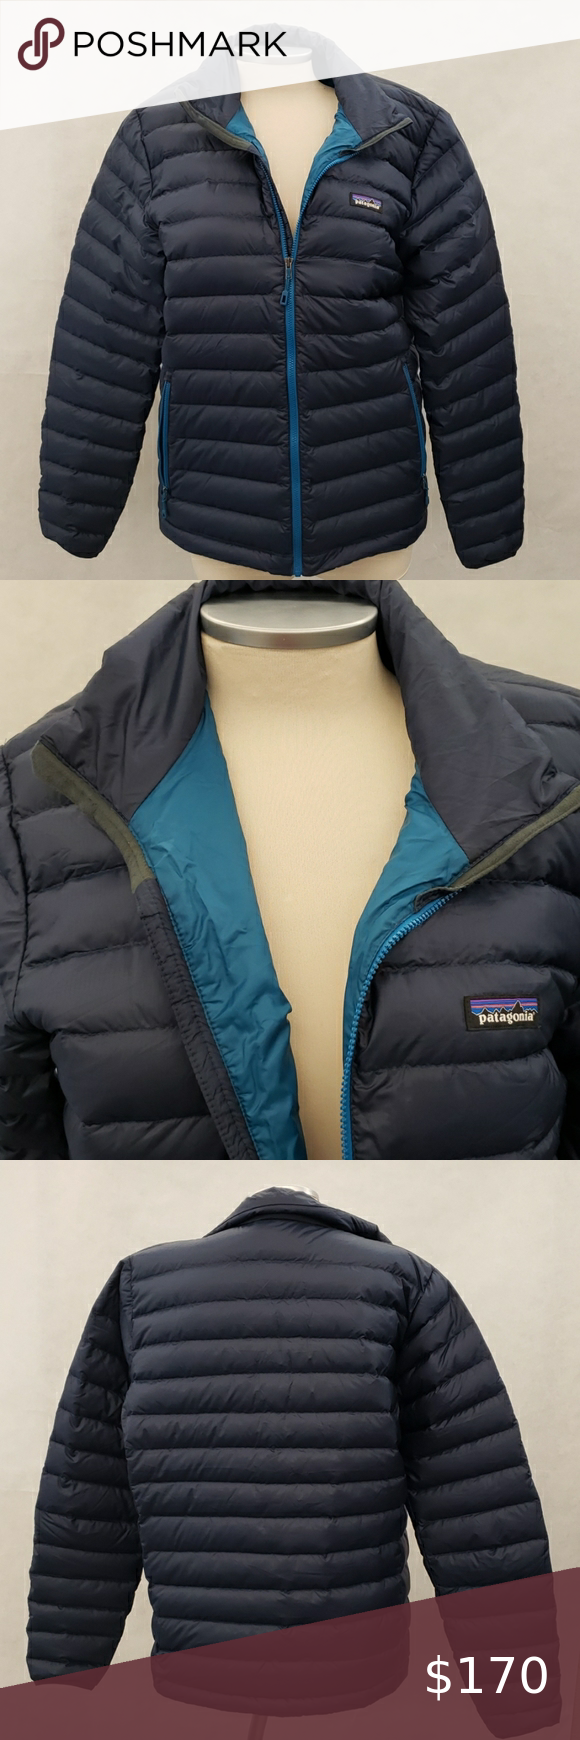 Patagonia Mens Down Sweater Puffer Jacket Coat in 2020